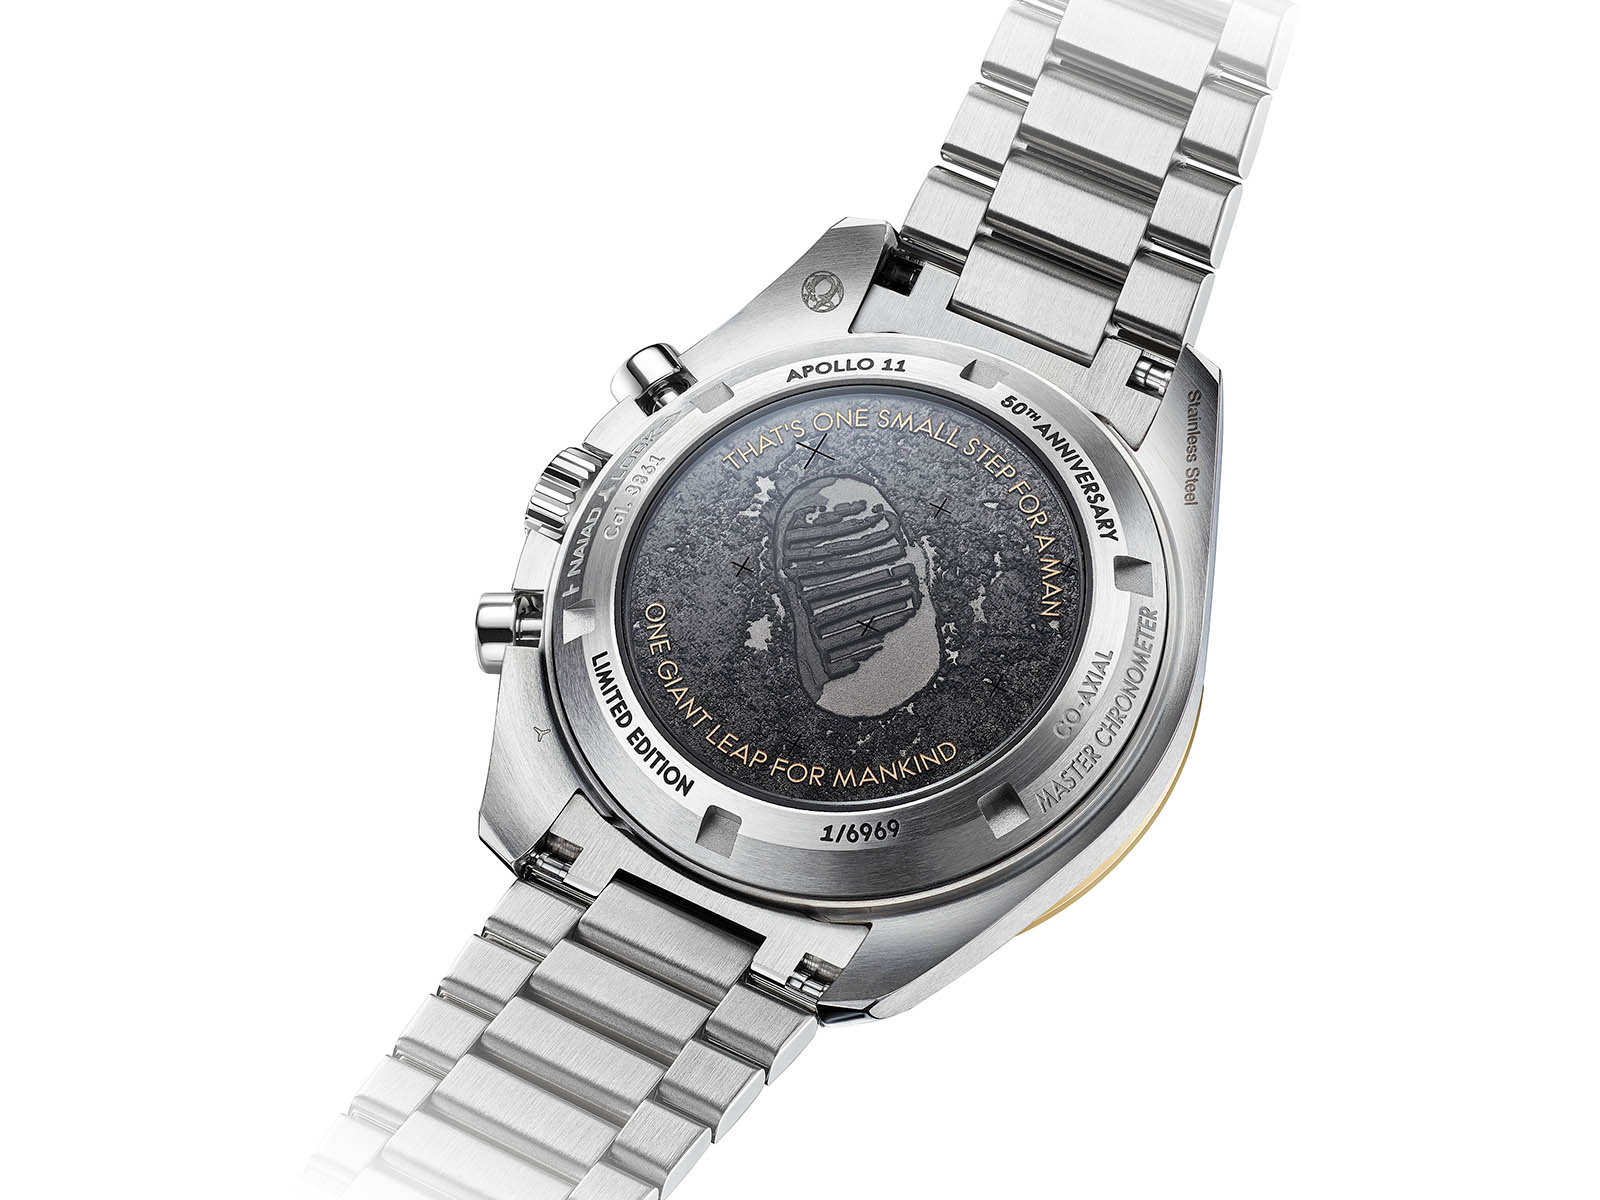 310-20-42-50-01-001-omega-speedmaster-apollo-11-50th-anniversary-limited-edition-10.jpg